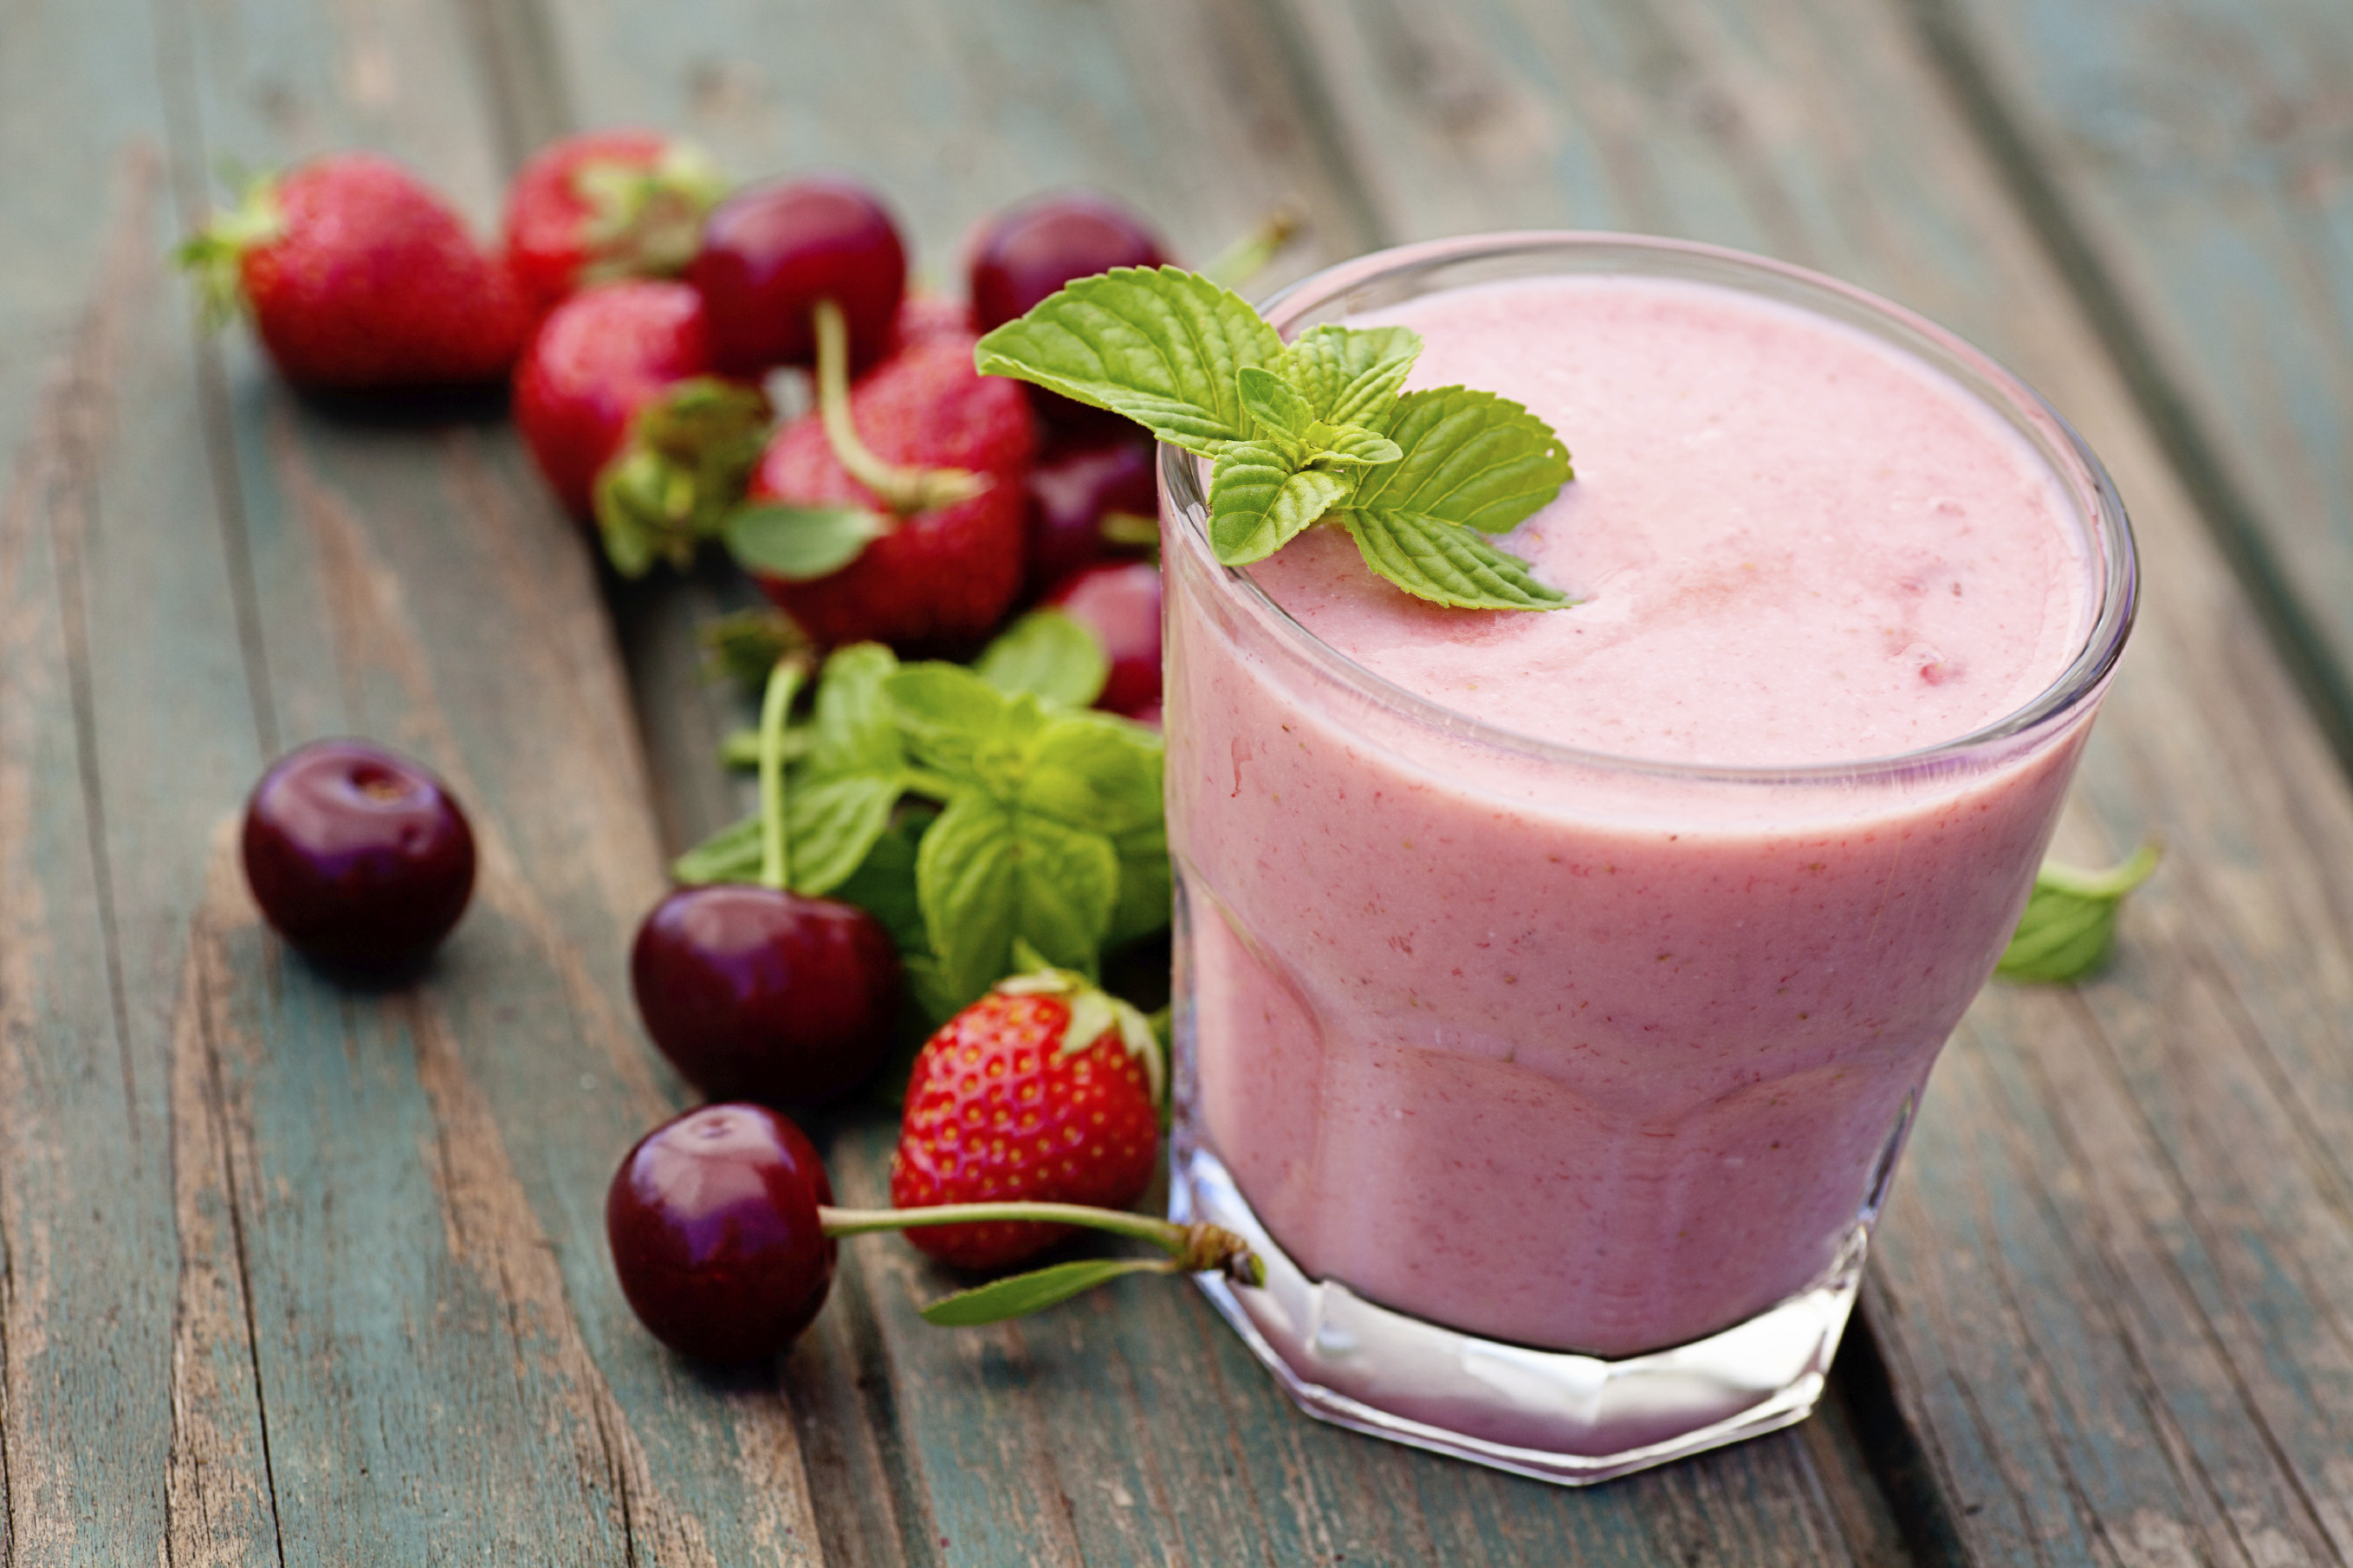 Healthy Premade Smoothies 20 Of the Best Ideas for the Best Frozen Fruit for Smoothies